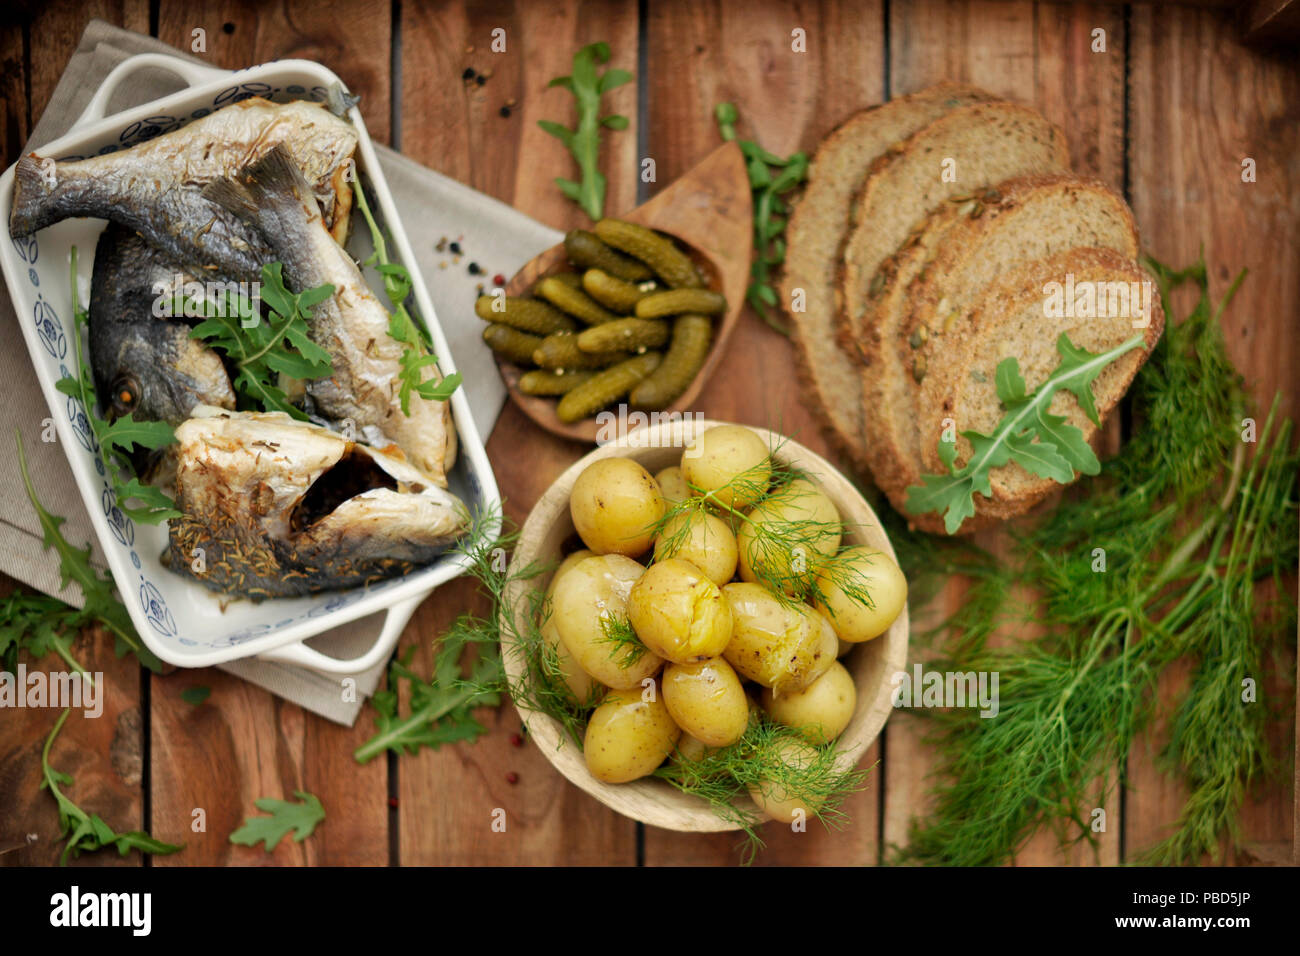 lunch. baked dorado and young potatoes. Marinated cucumbers and black bread. in rustic style, - Stock Image